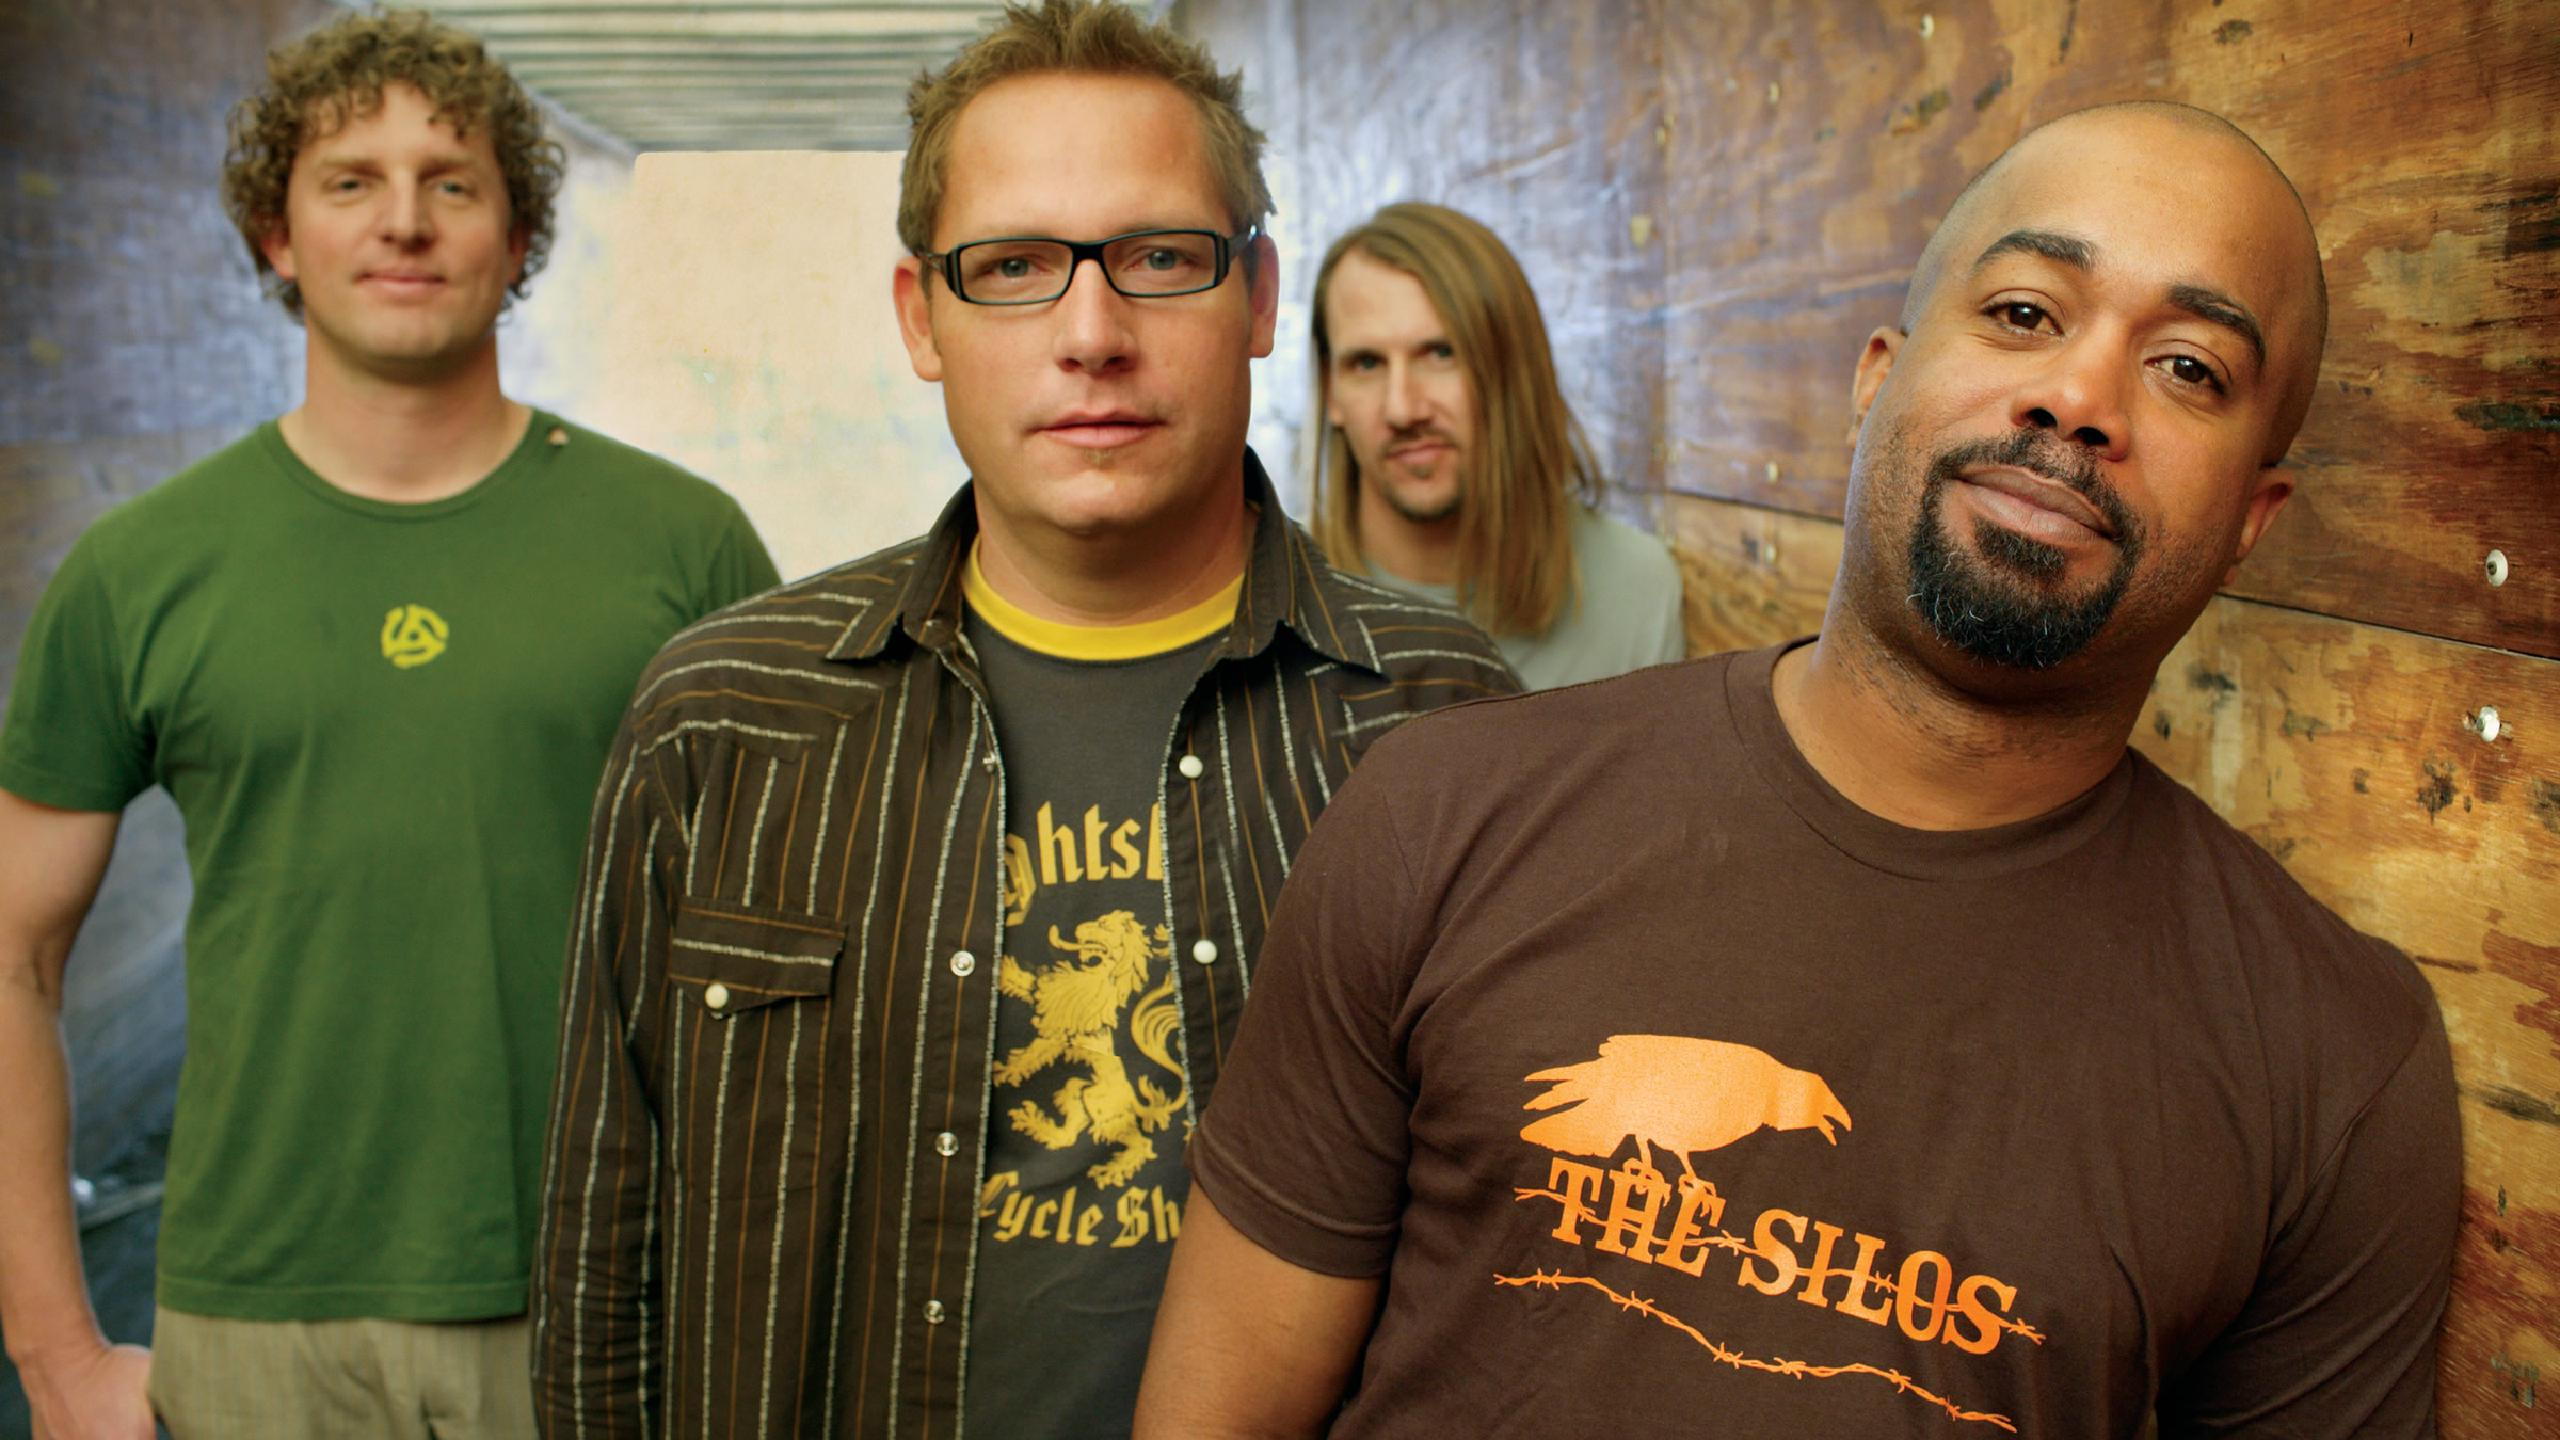 Hootie And The Blowfish Tour 2020.Hootie The Blowfish Tour Dates 2019 2020 Hootie The